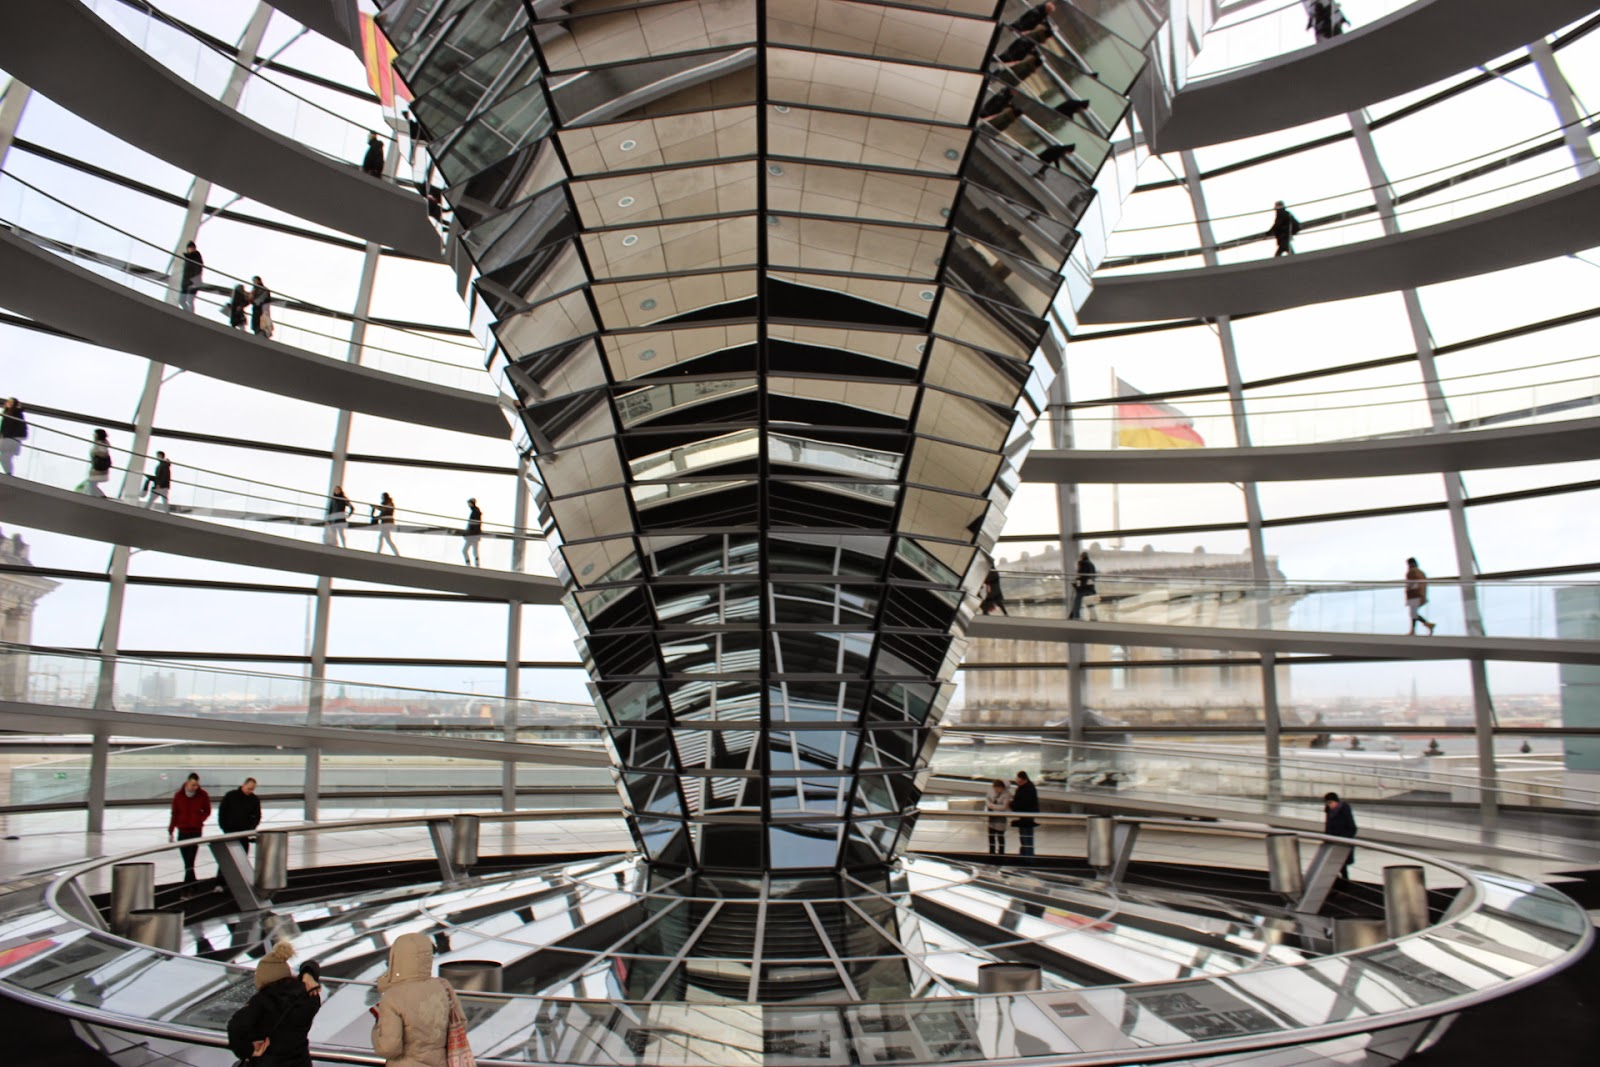 Berlin Reichstag Building Dome